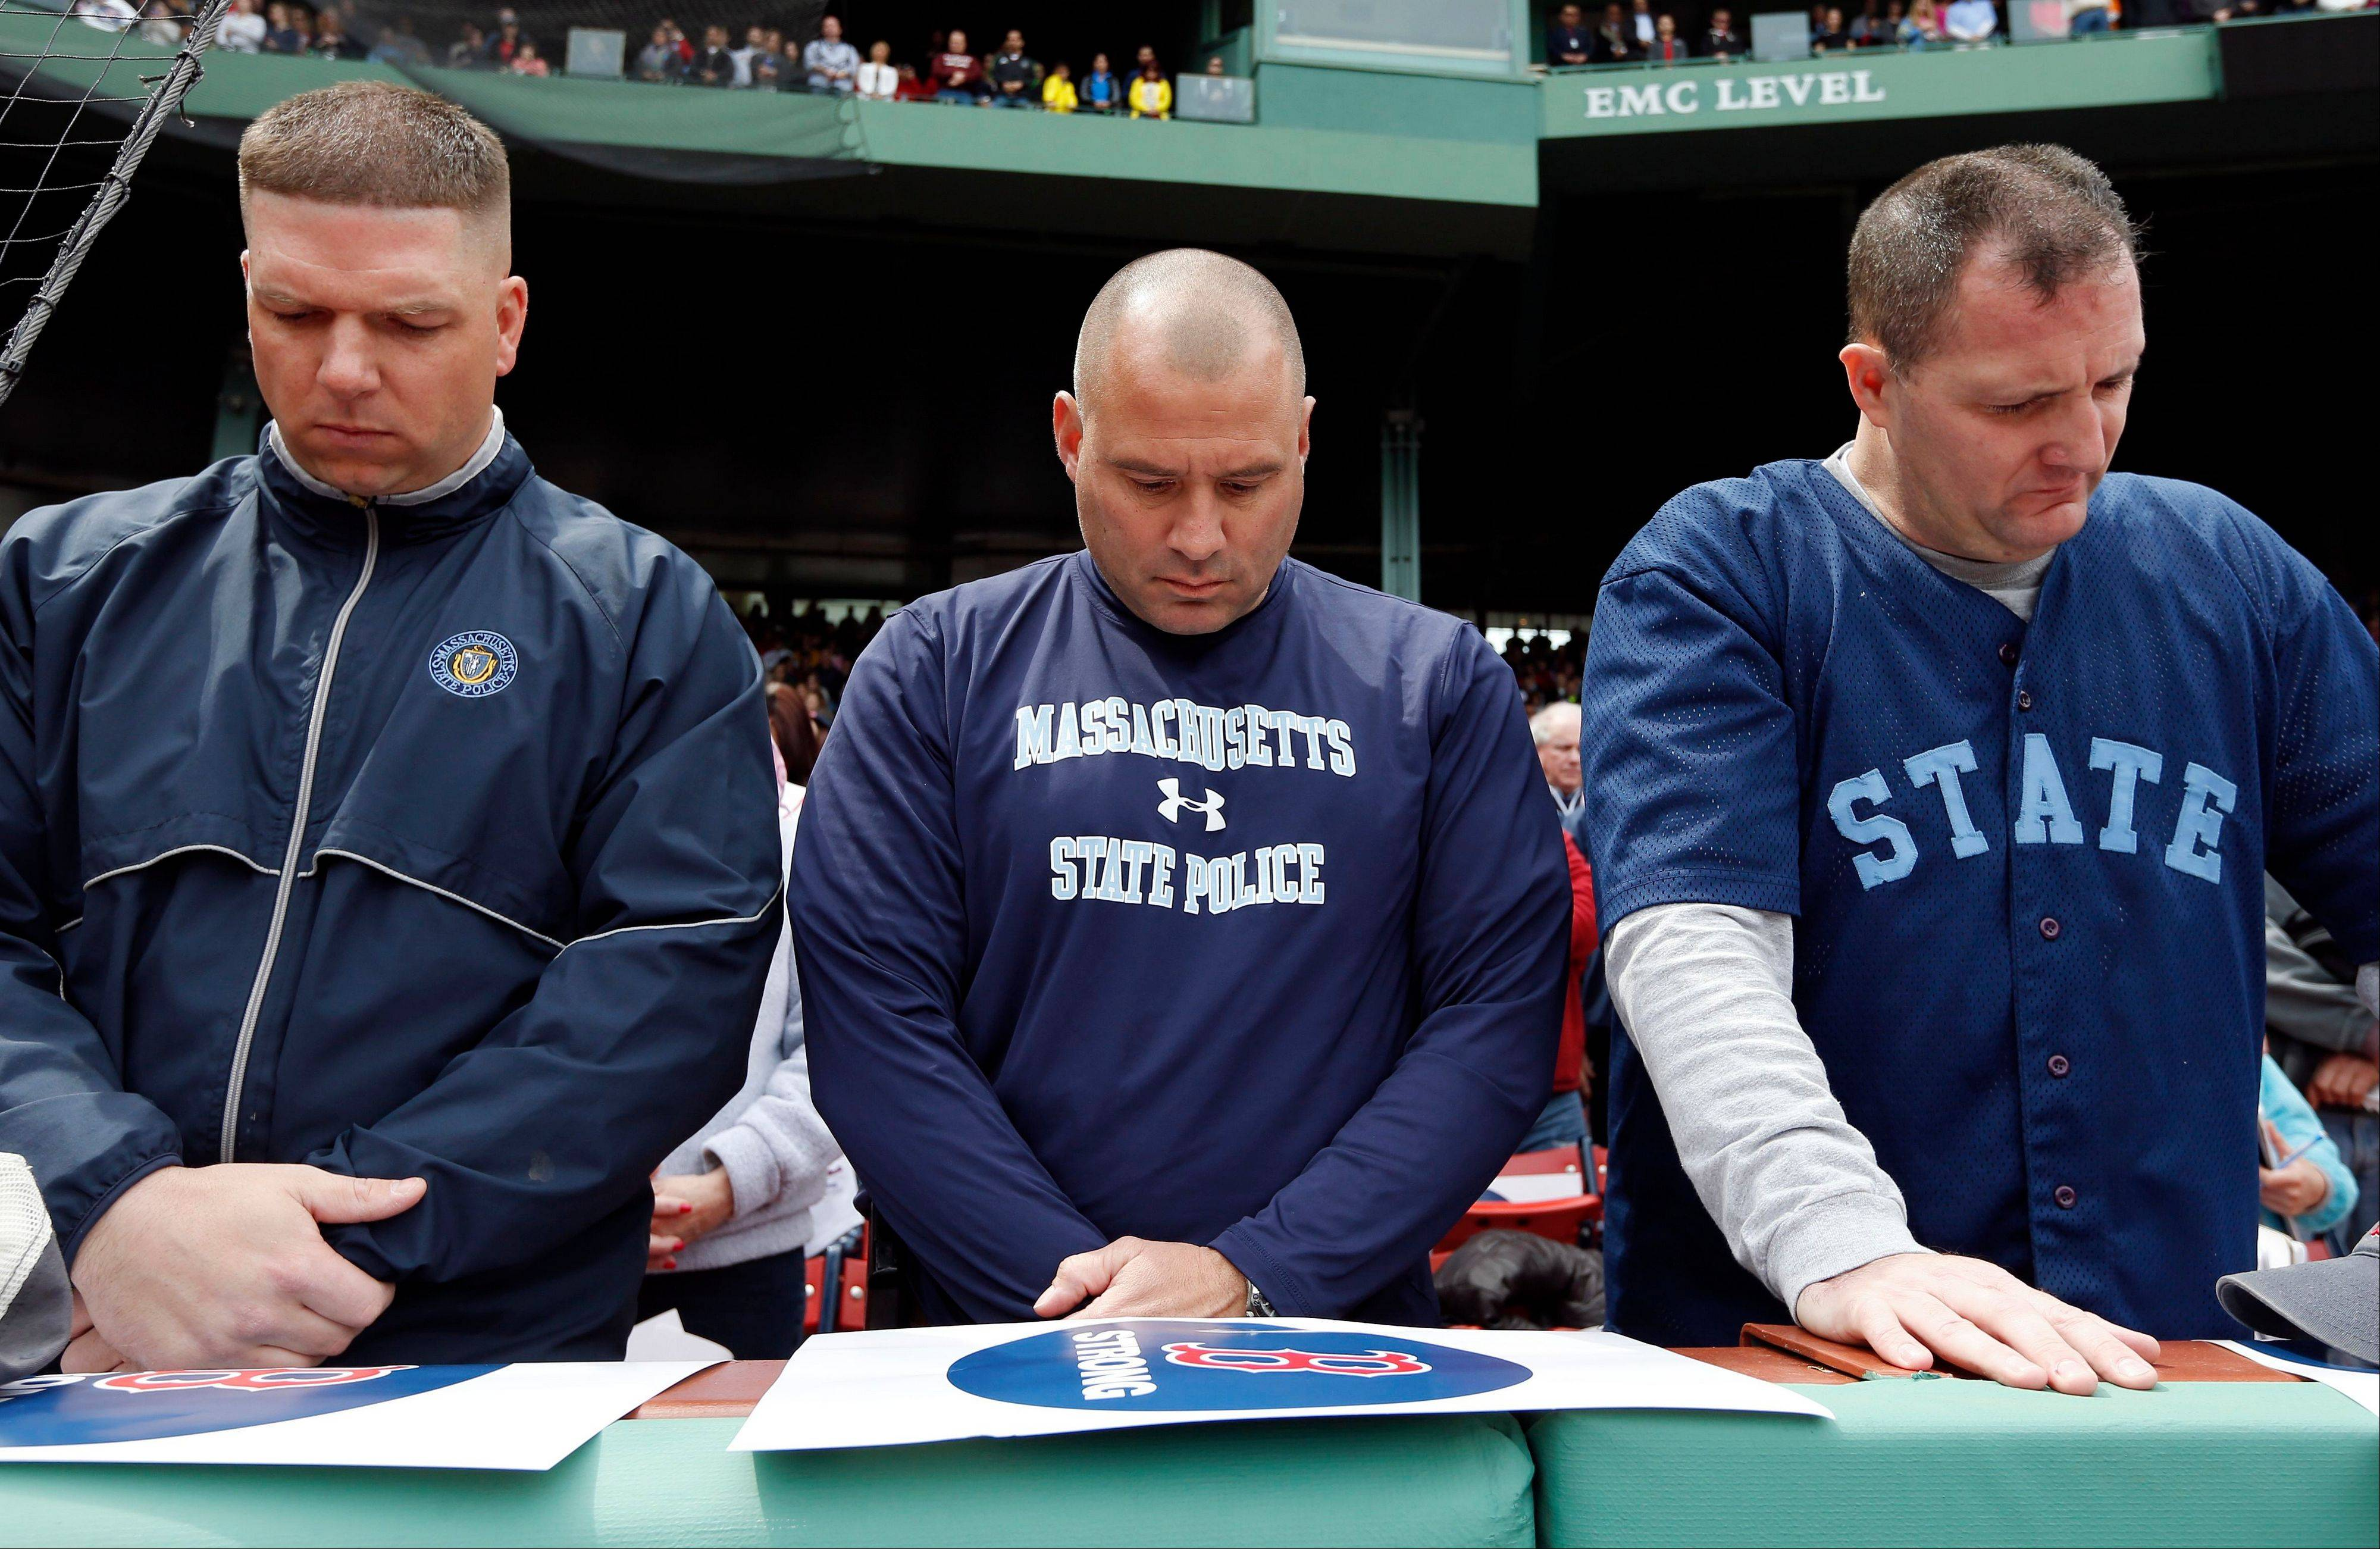 Three members of the Massachusetts State Police bow their head during a moment of silence before a baseball game between the Boston Red Sox and the Kansas City Royals in Boston, Saturday, April 20, 2013.